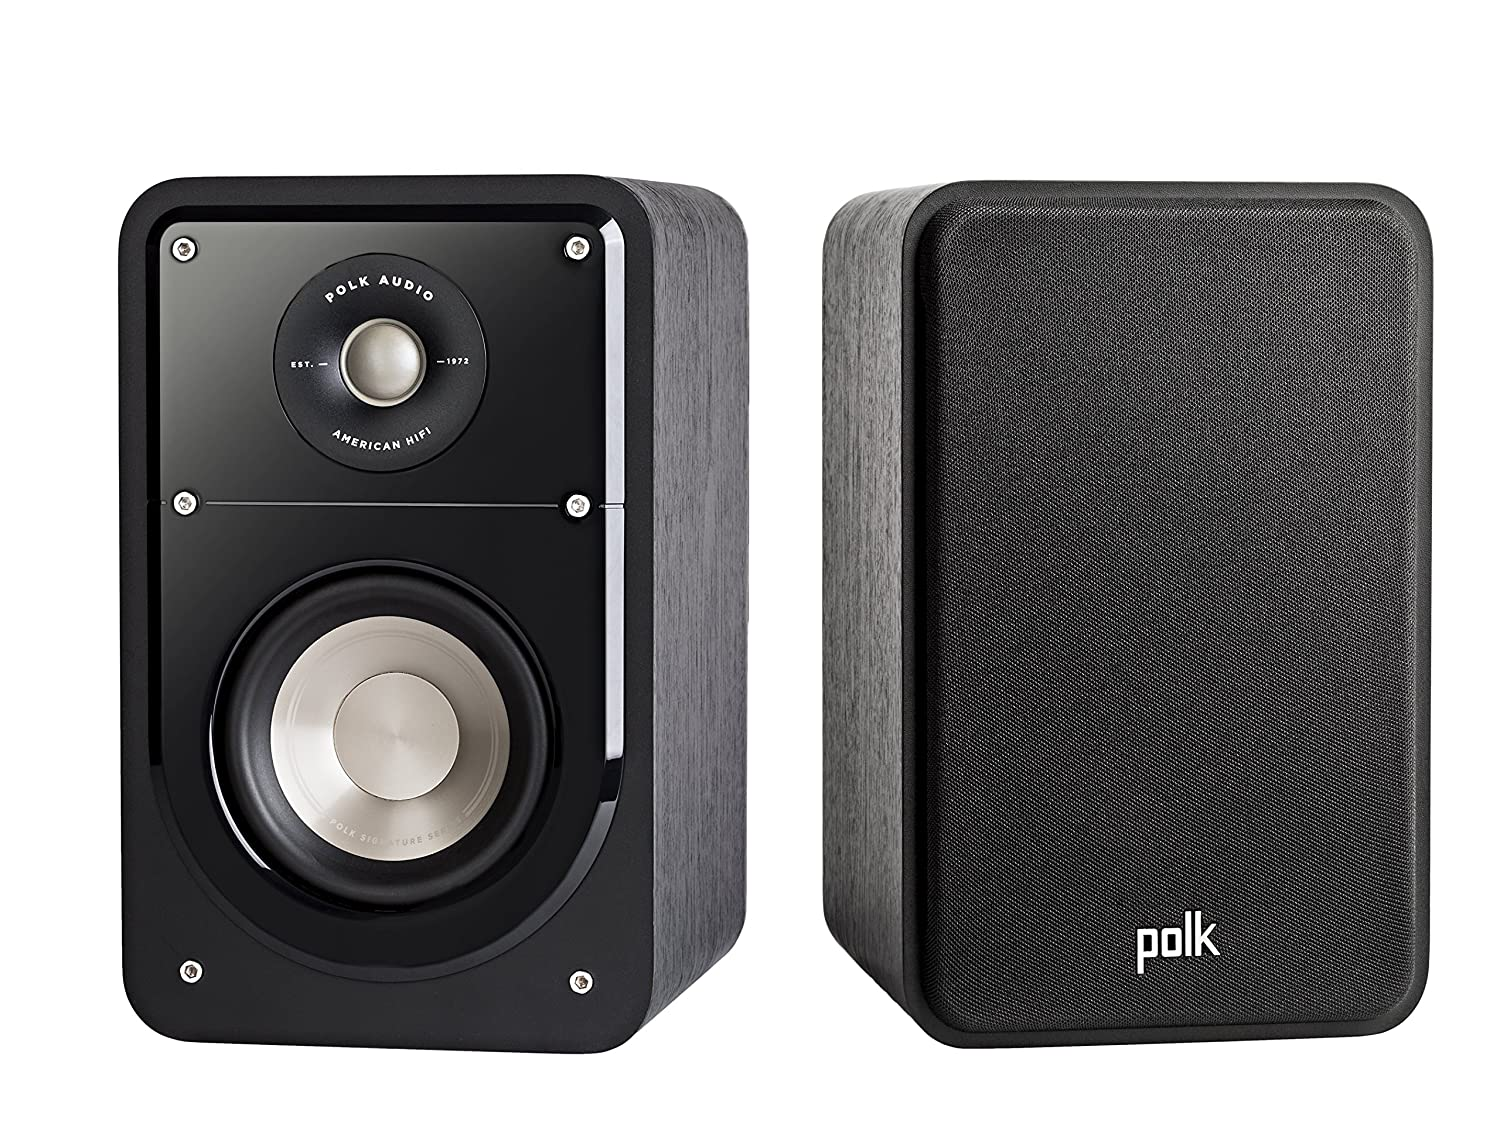 Polk Audio Signature S15 American HiFi Home Theater Compact Bookshelf Speaker